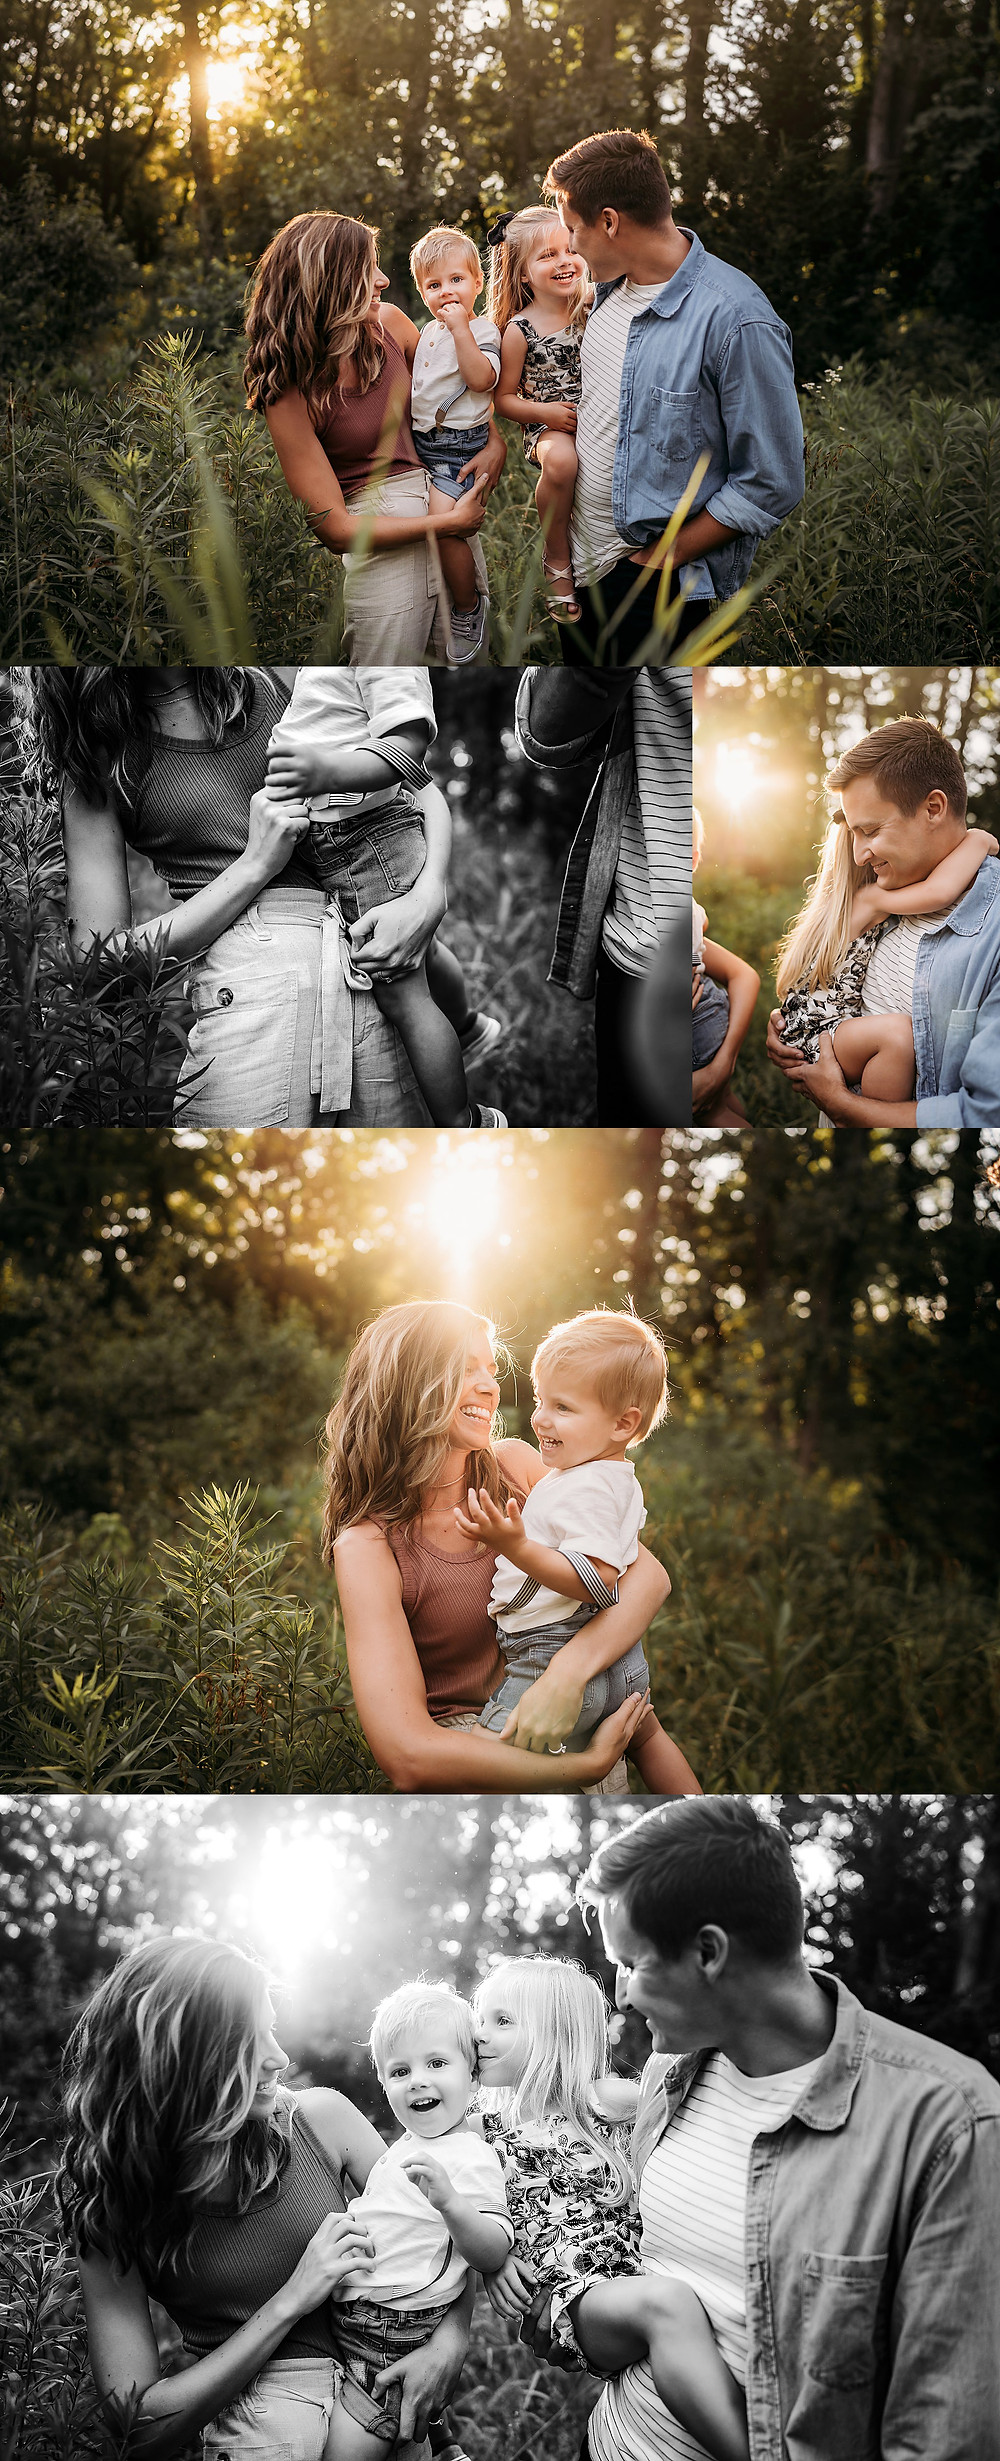 Indianapolis indiana Newborn pregnancy announcement Photographer, Alex Morris Design, dogs